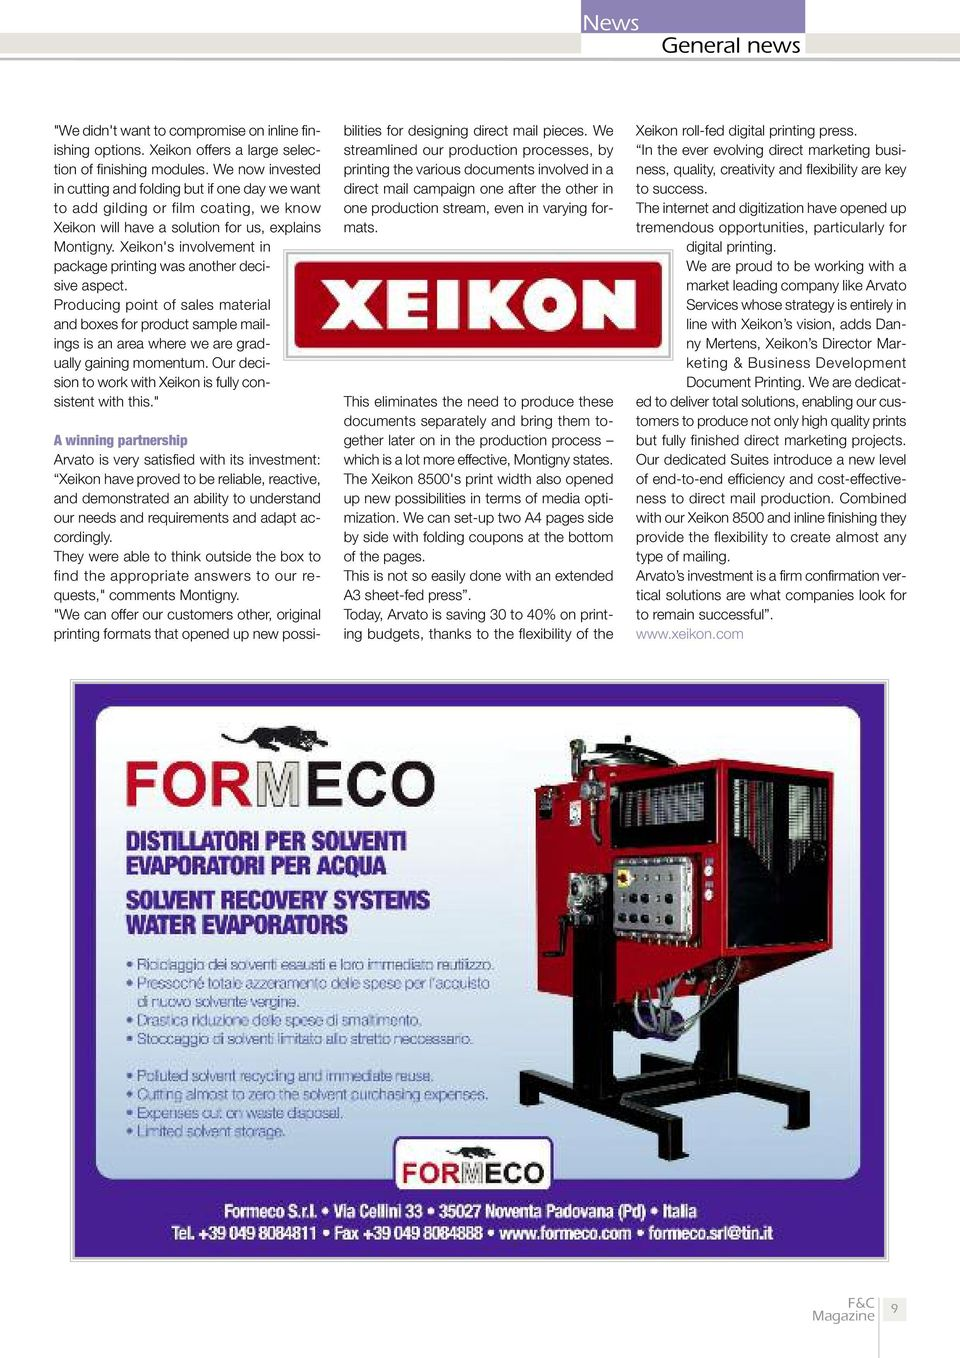 Xeikon's involvement in package printing was another decisive aspect. Producing point of sales material and boxes for product sample mailings is an area where we are gradually gaining momentum.